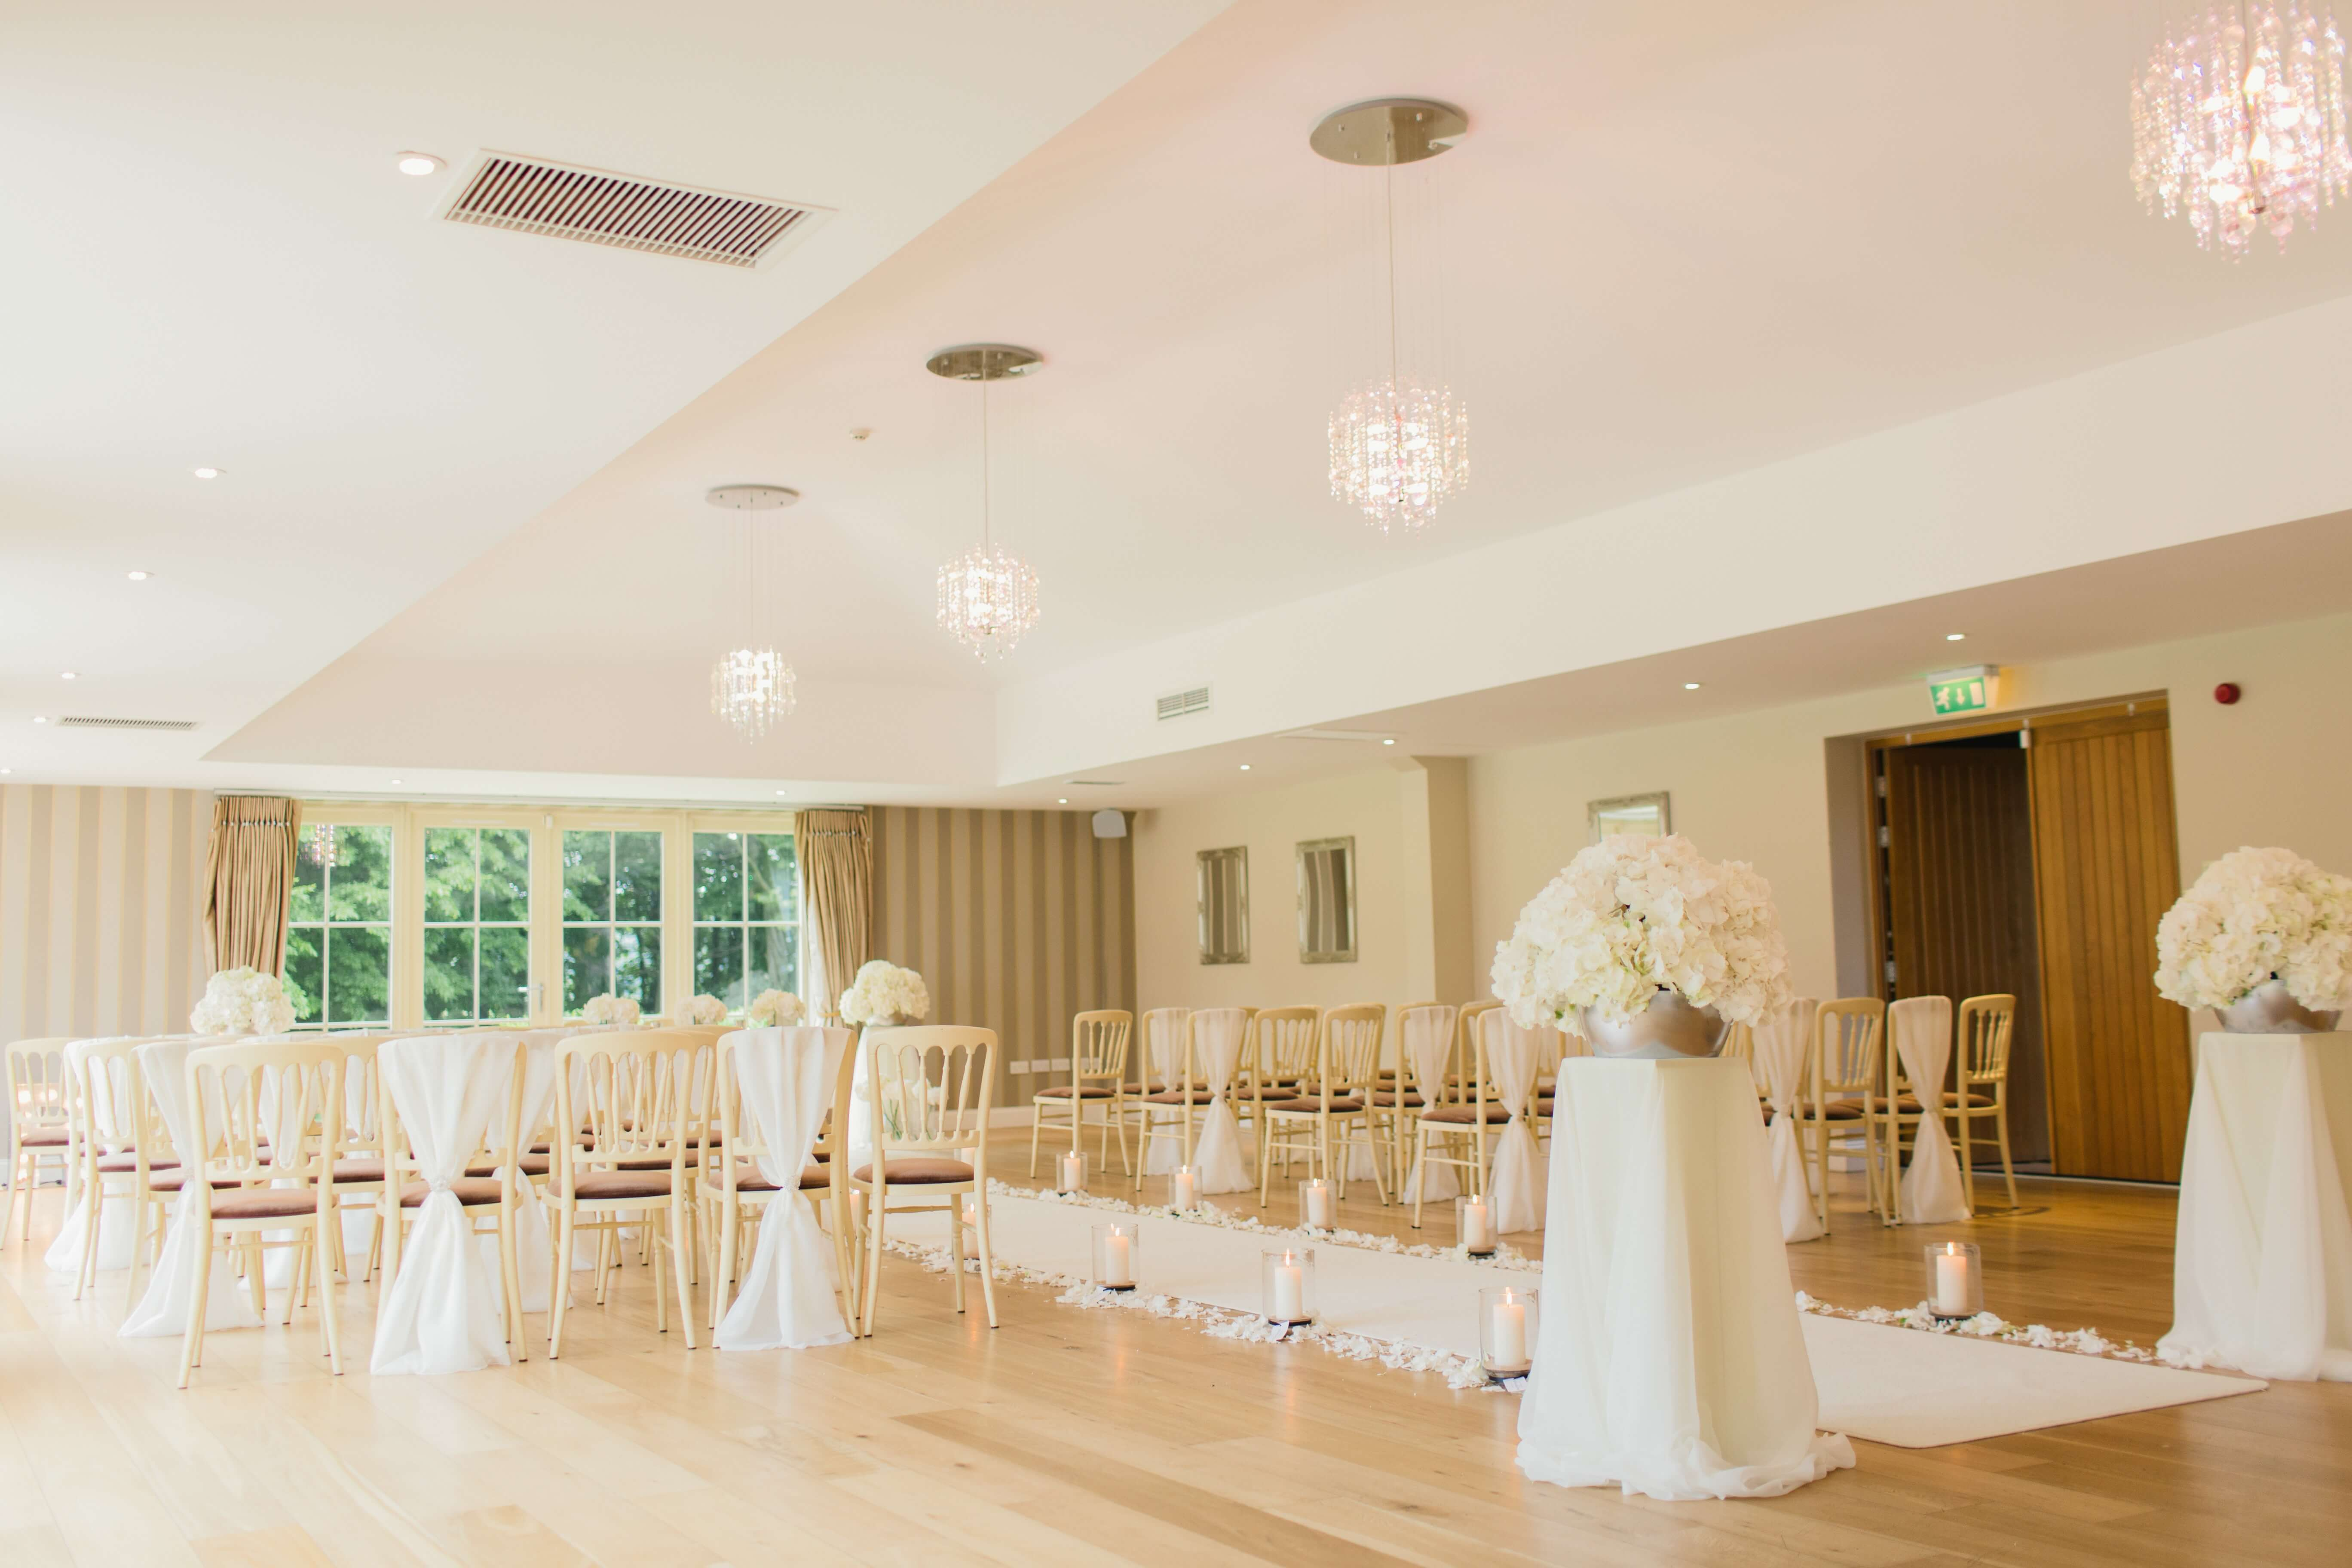 Dining hall set up for white wedding ceremony